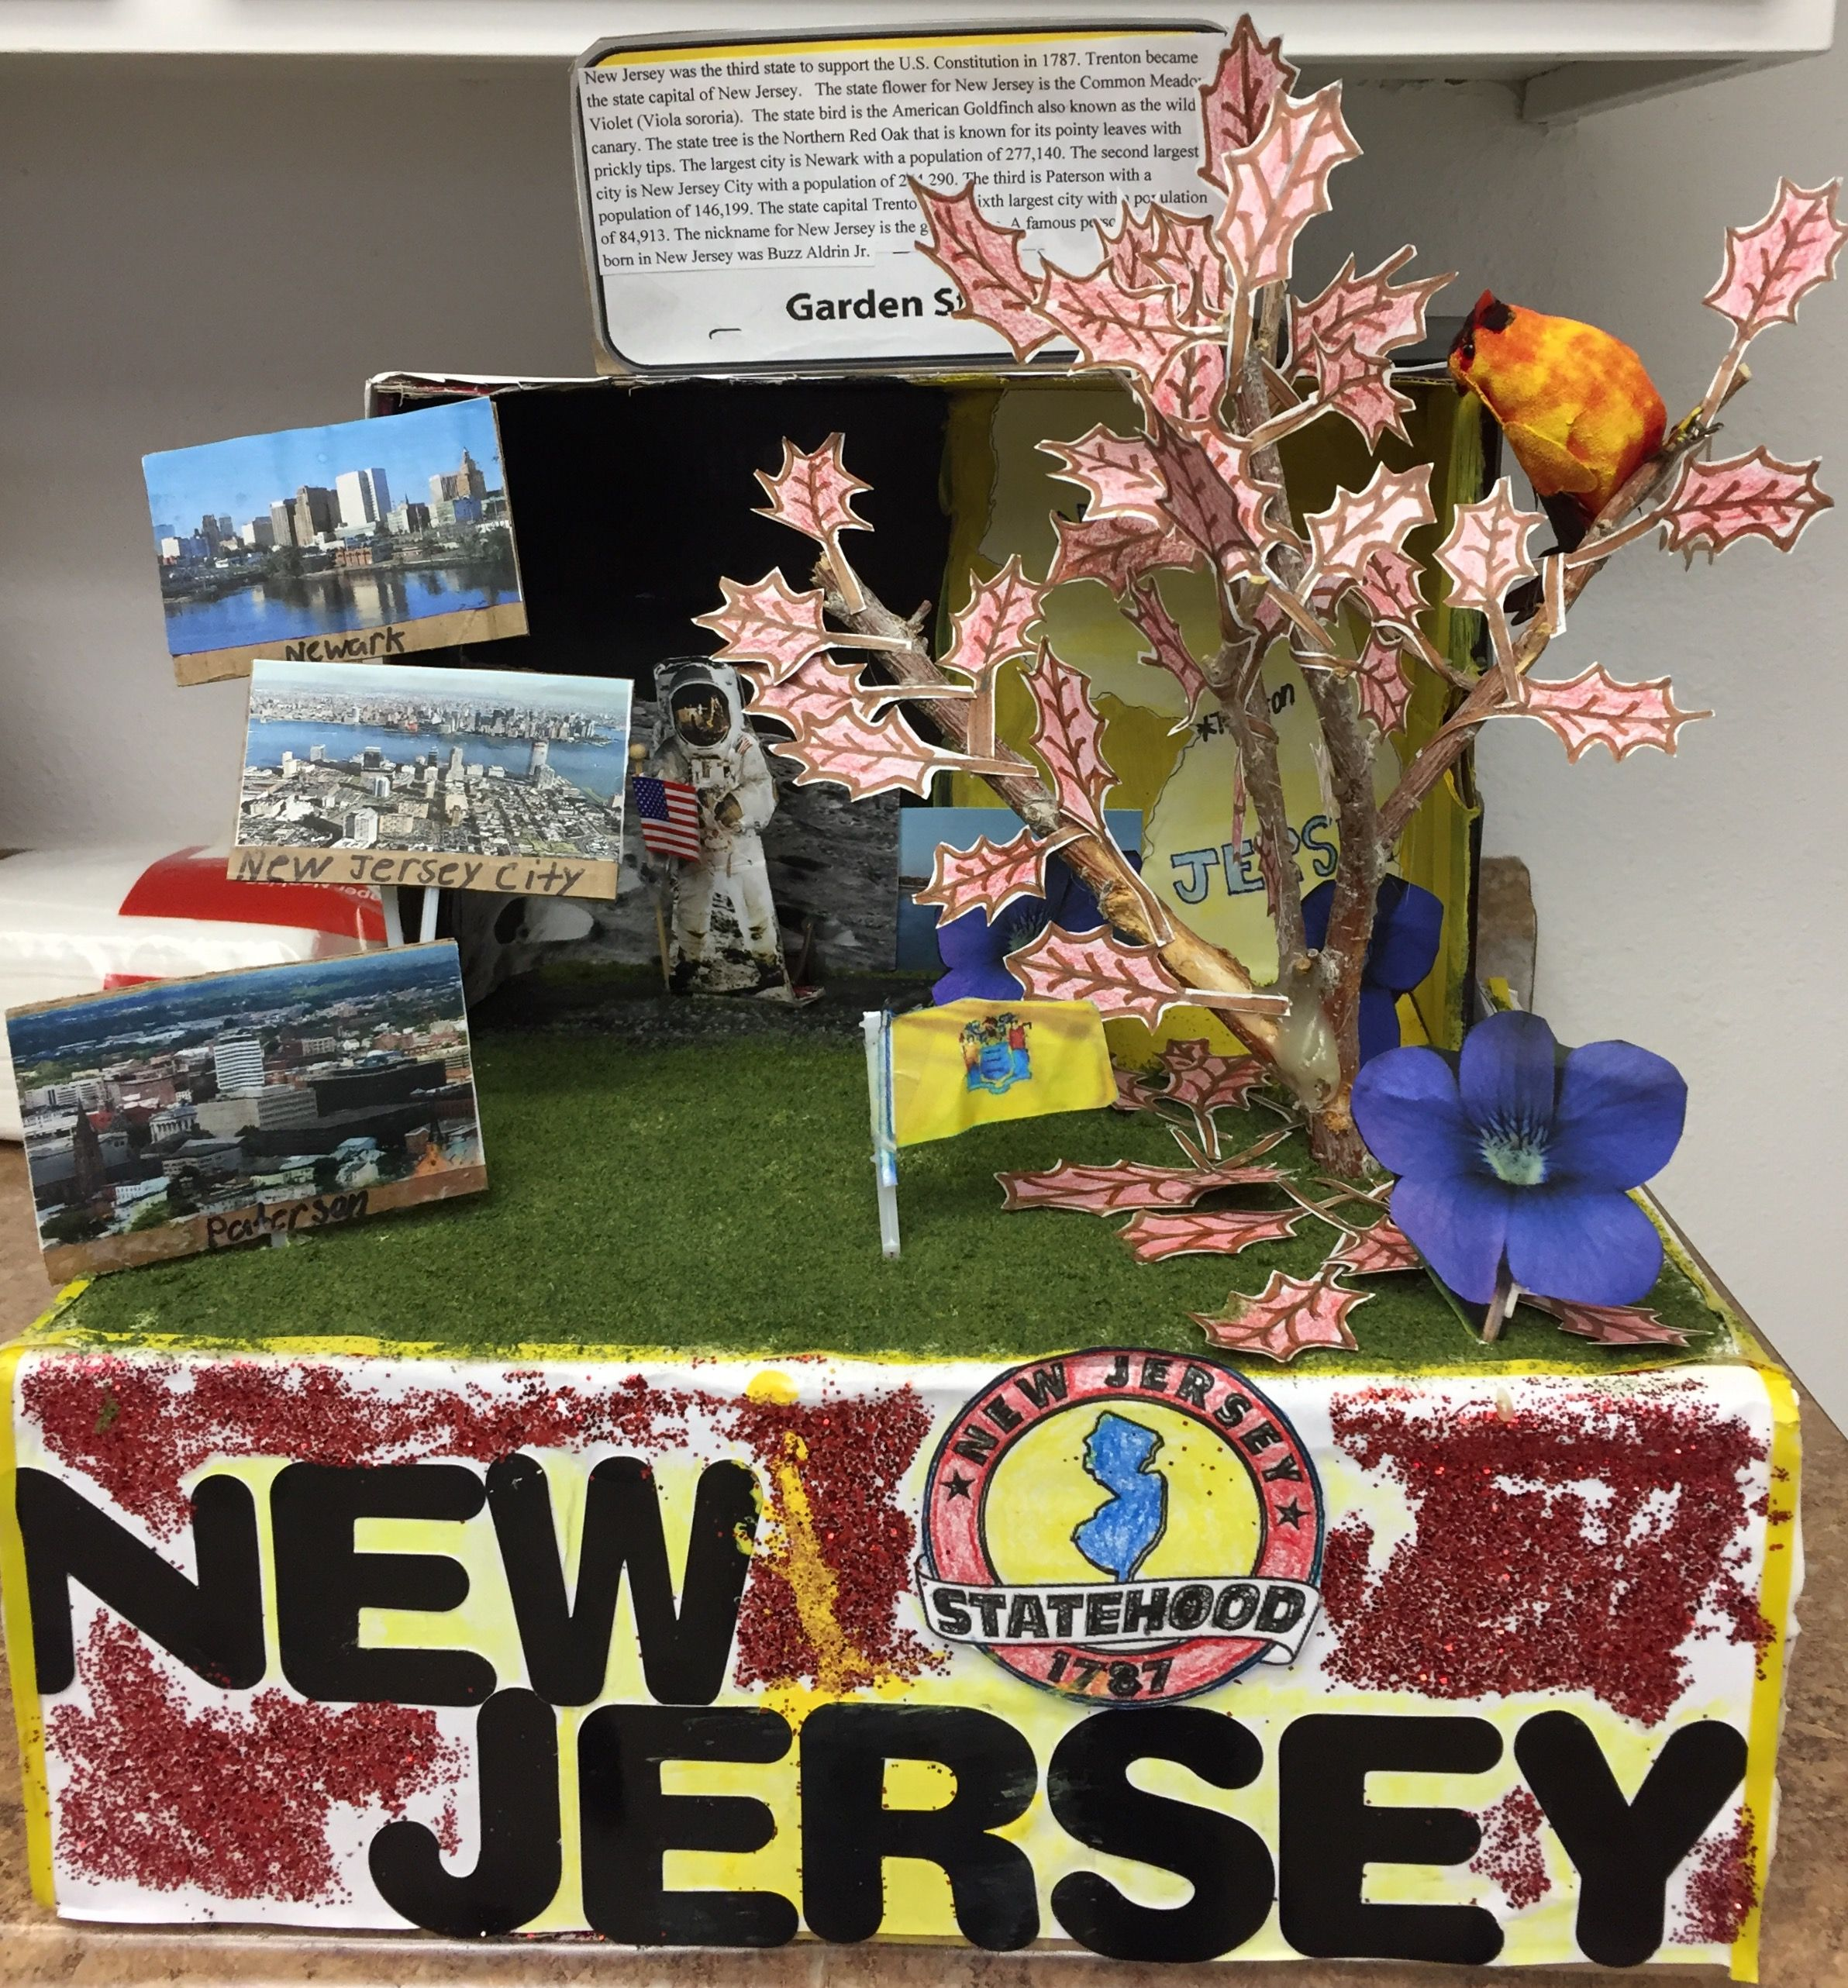 New Jersey State Float Displays state bird, tree, flower